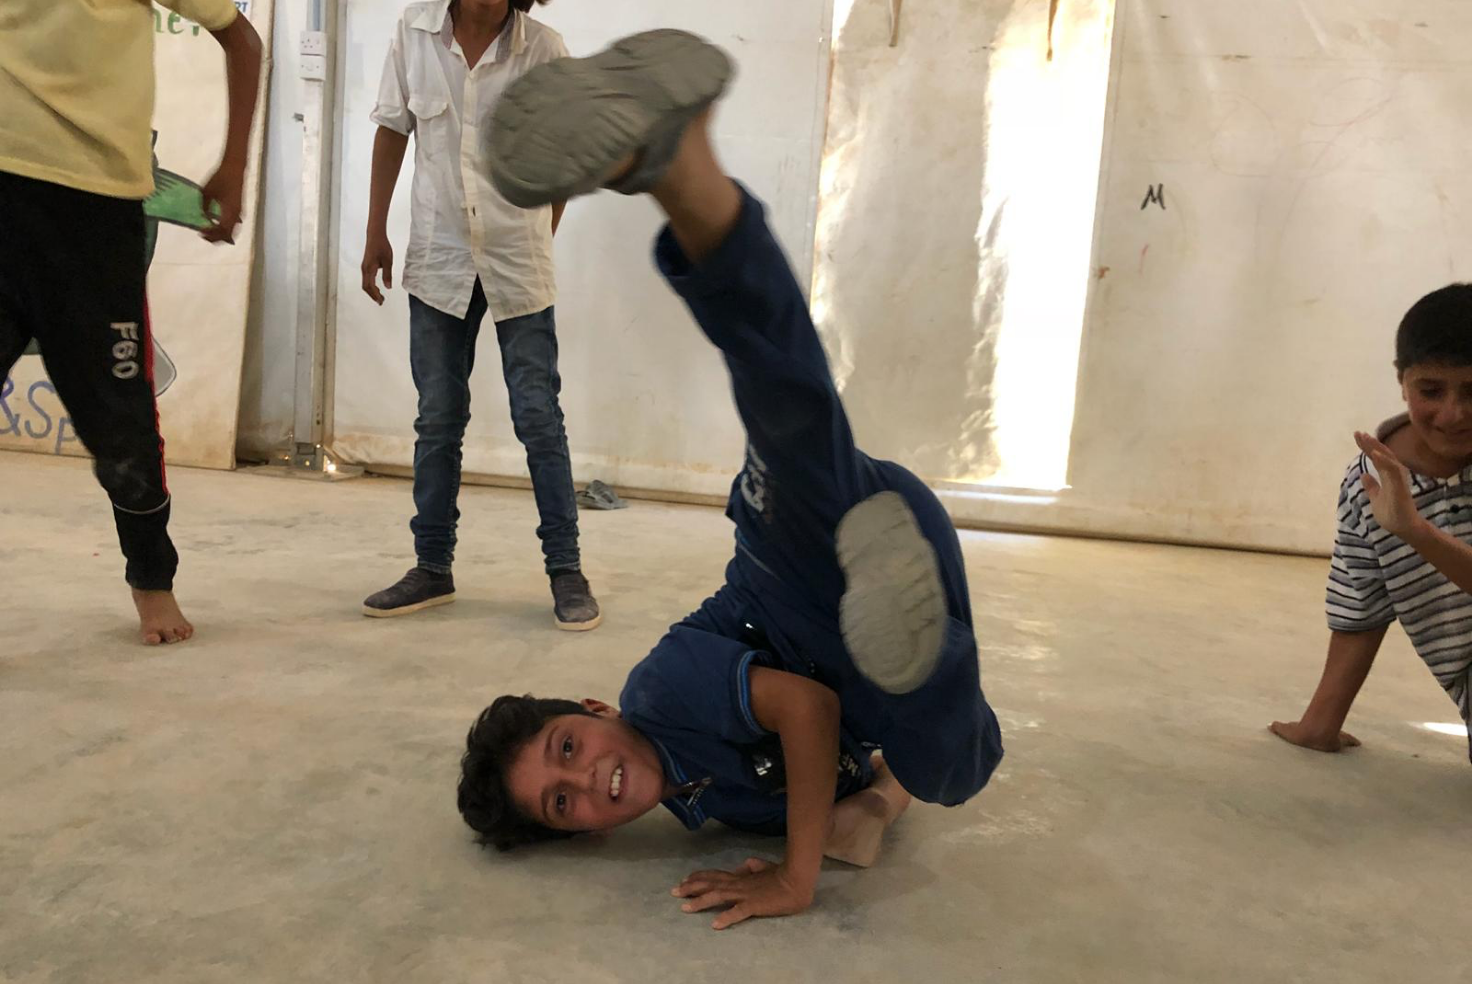 Young boy strikes a Bboy pose on a concrete floor, while two people stand to the left, and another boy dances on the floor on the right.